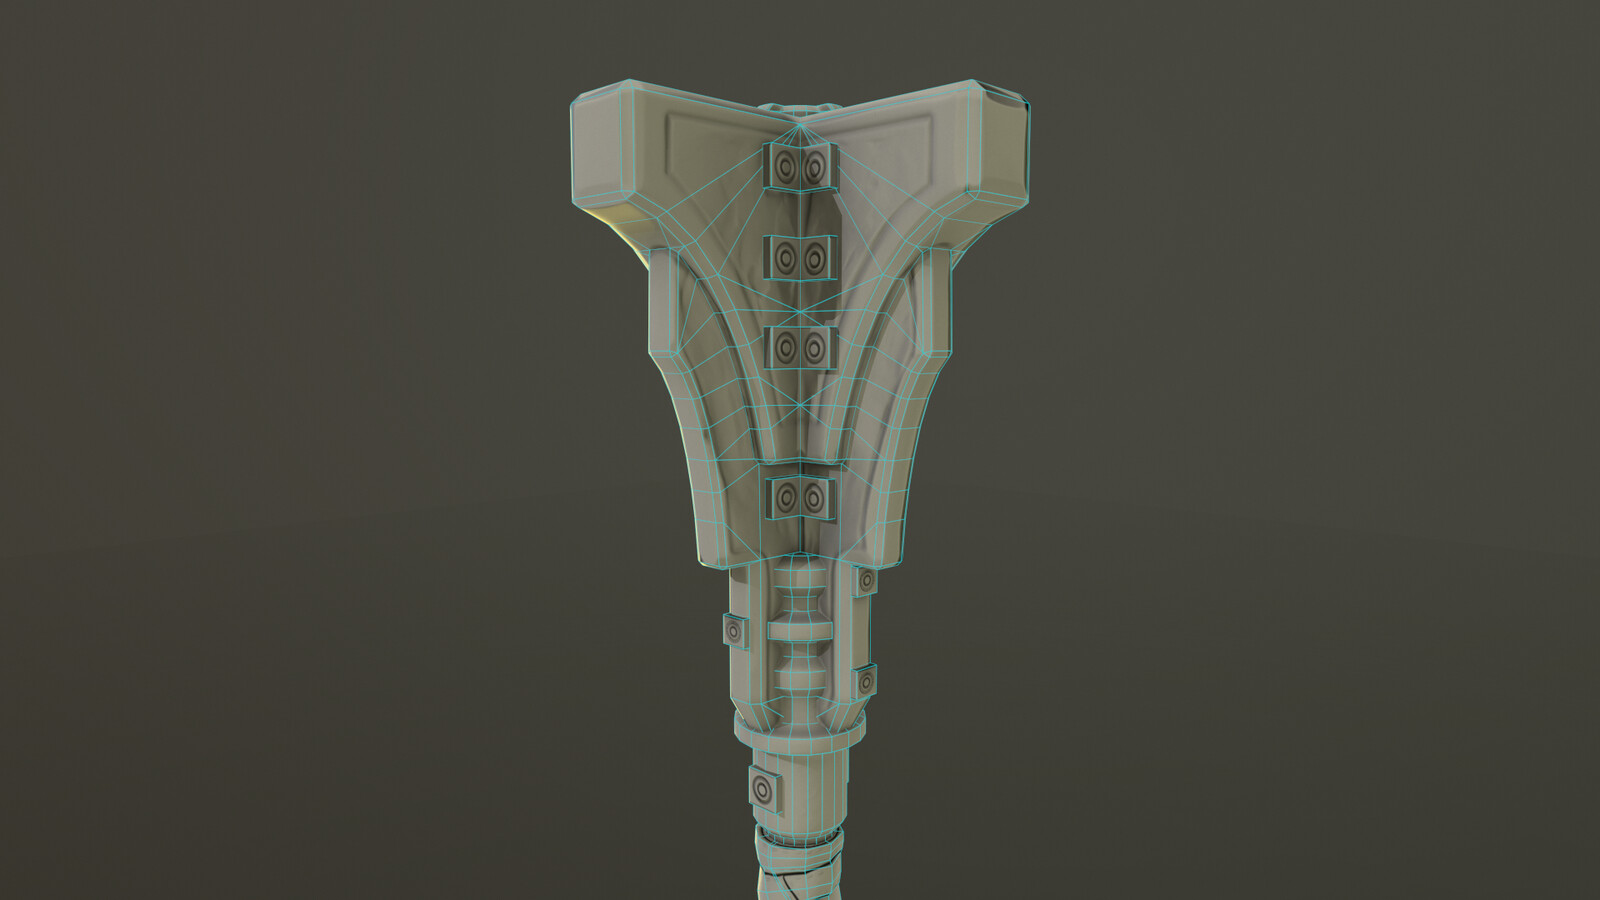 Mace Render in Marmoset Focused on the Mace Head Topology